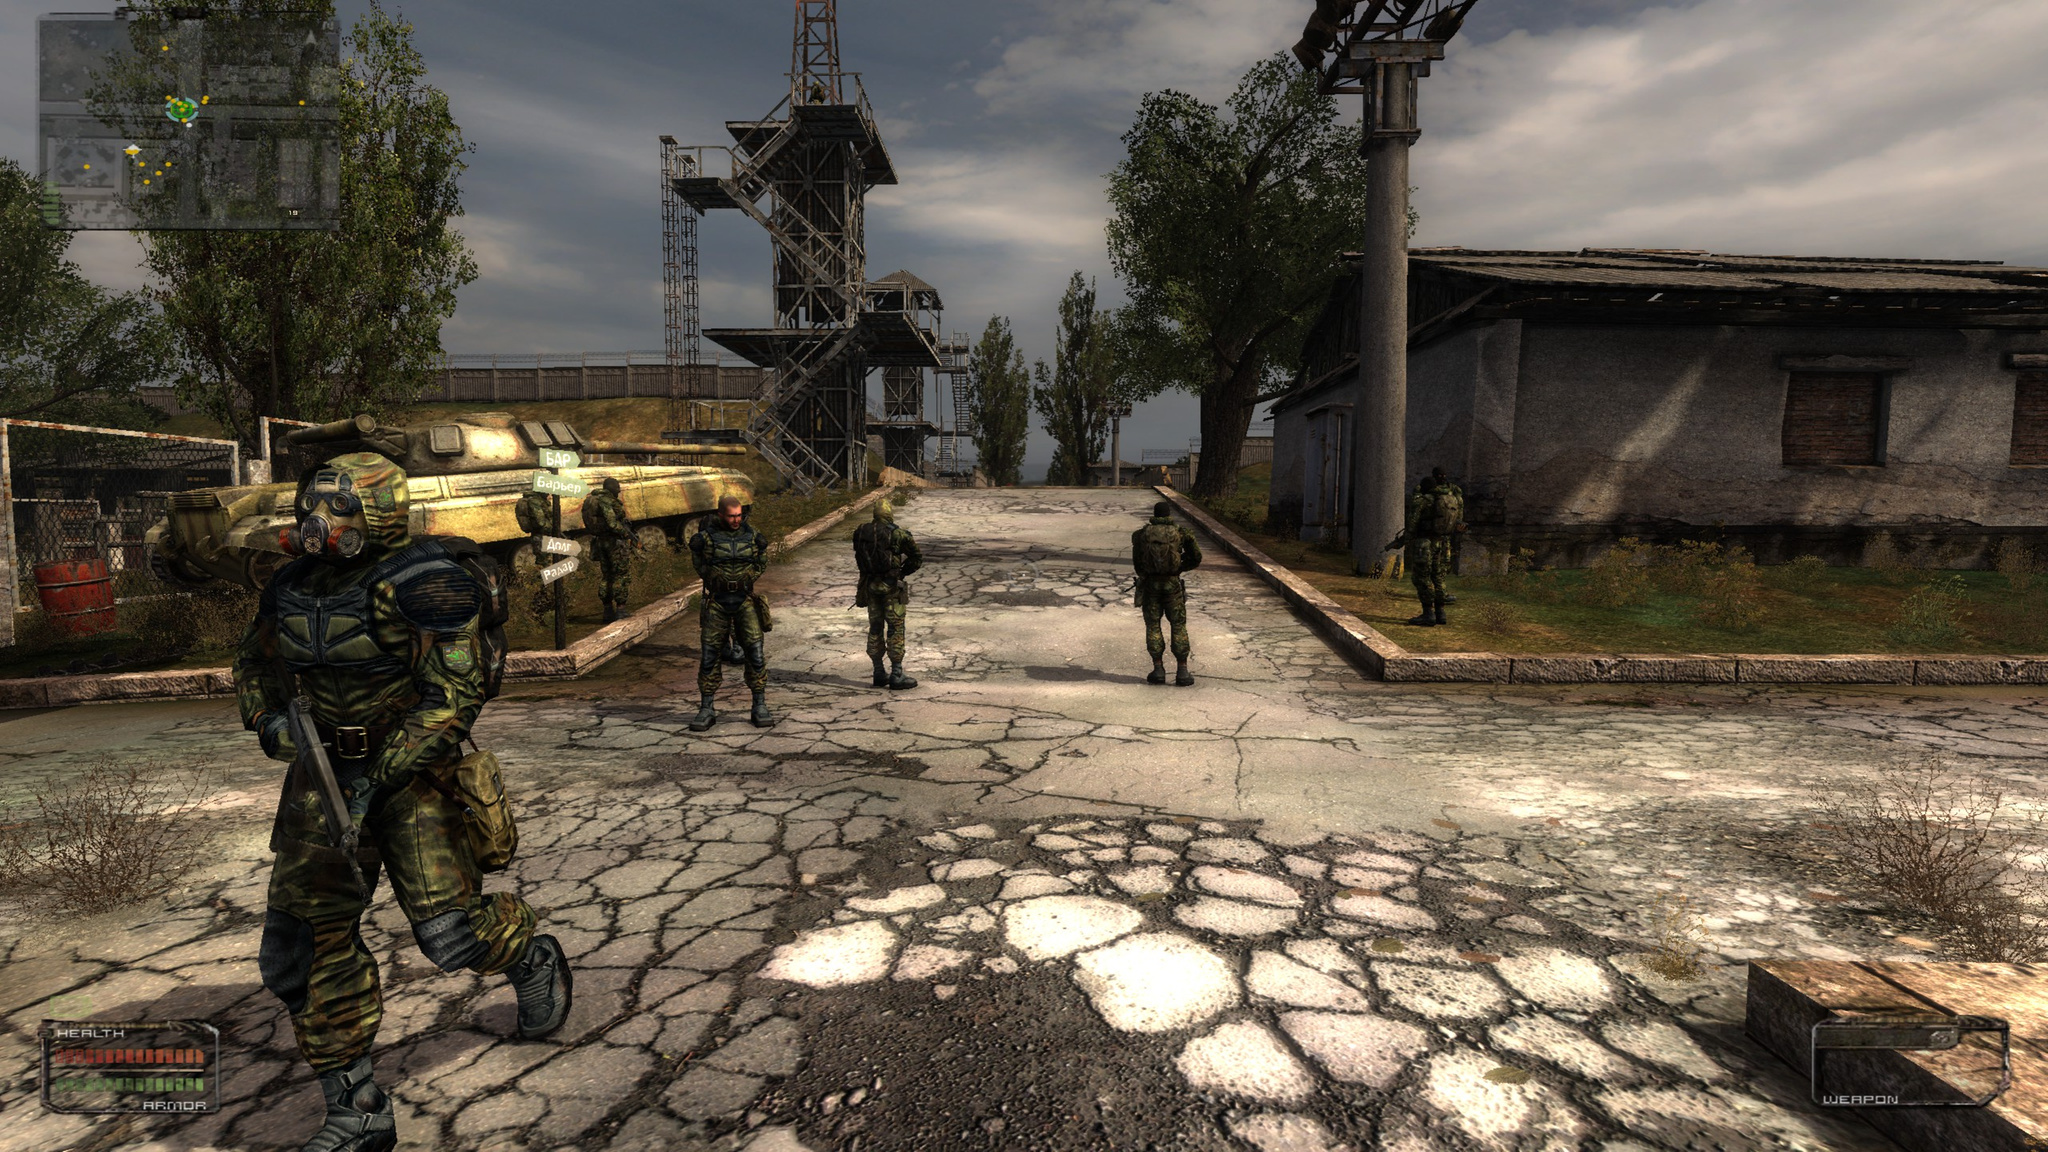 S.T.A.L.K.E.R.: Clear Sky on Steam